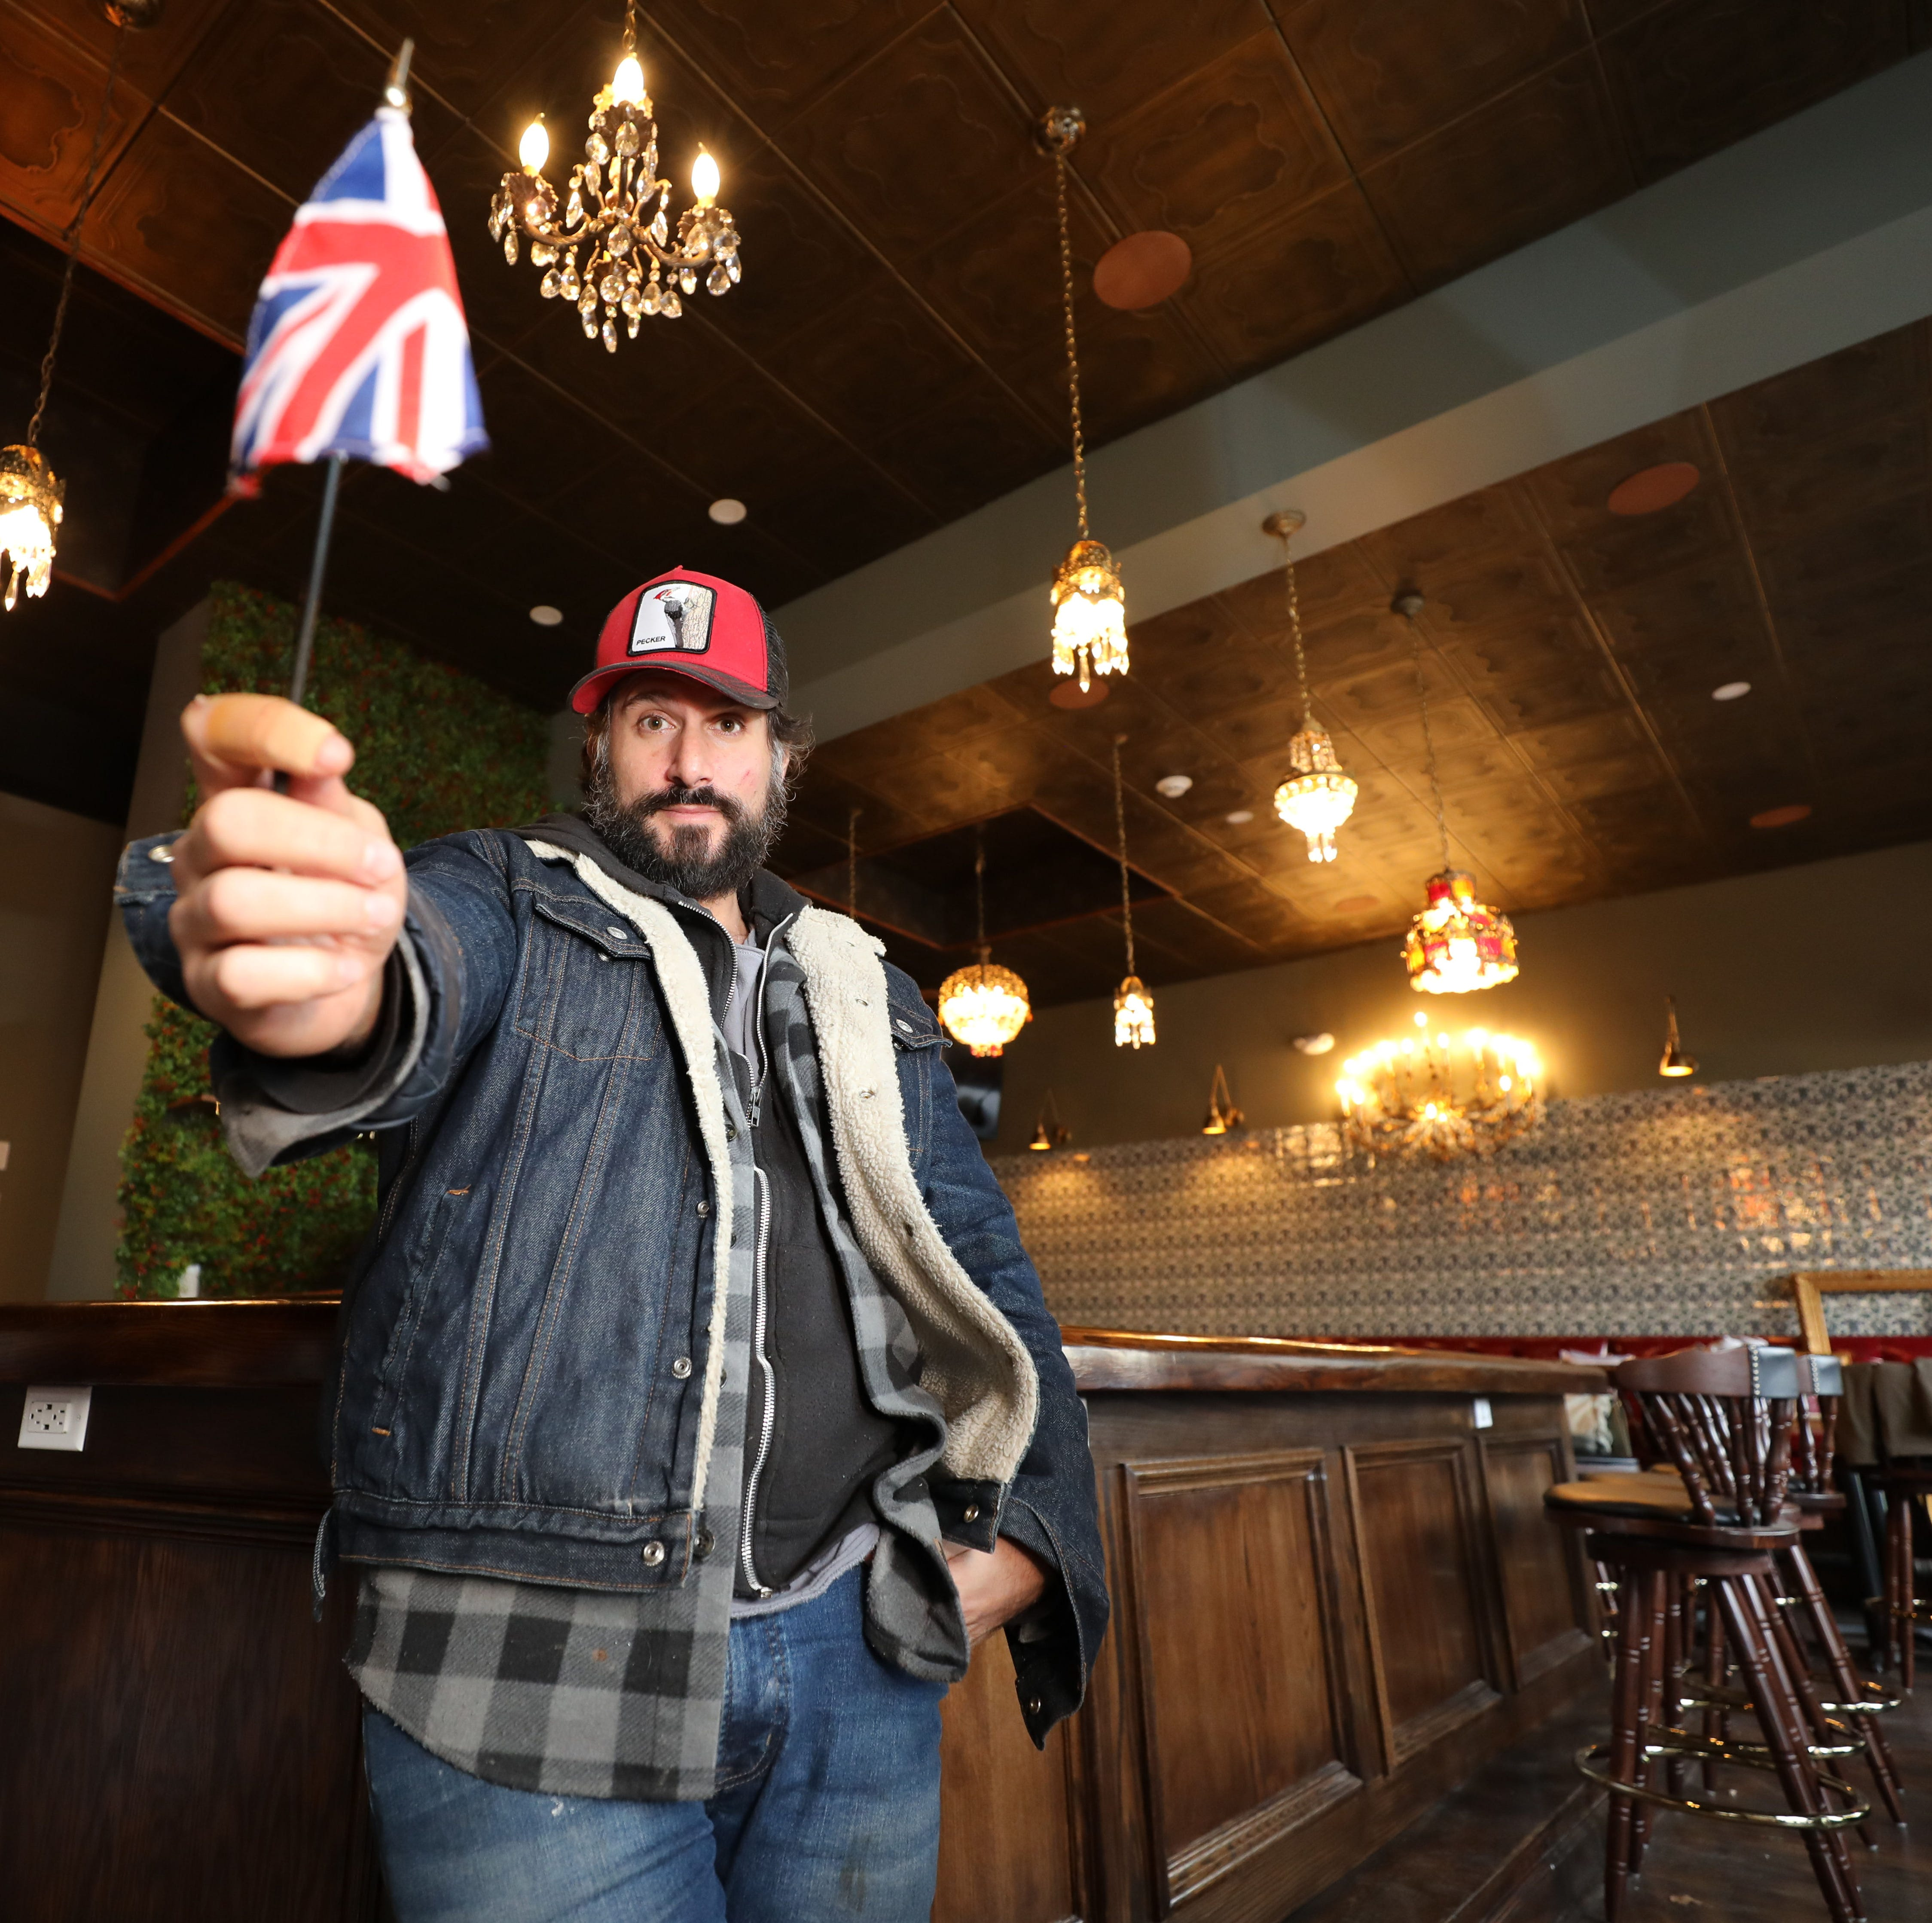 The British are coming: Chef Dave DiBari will open a London-style gastropub, The Rare Bit